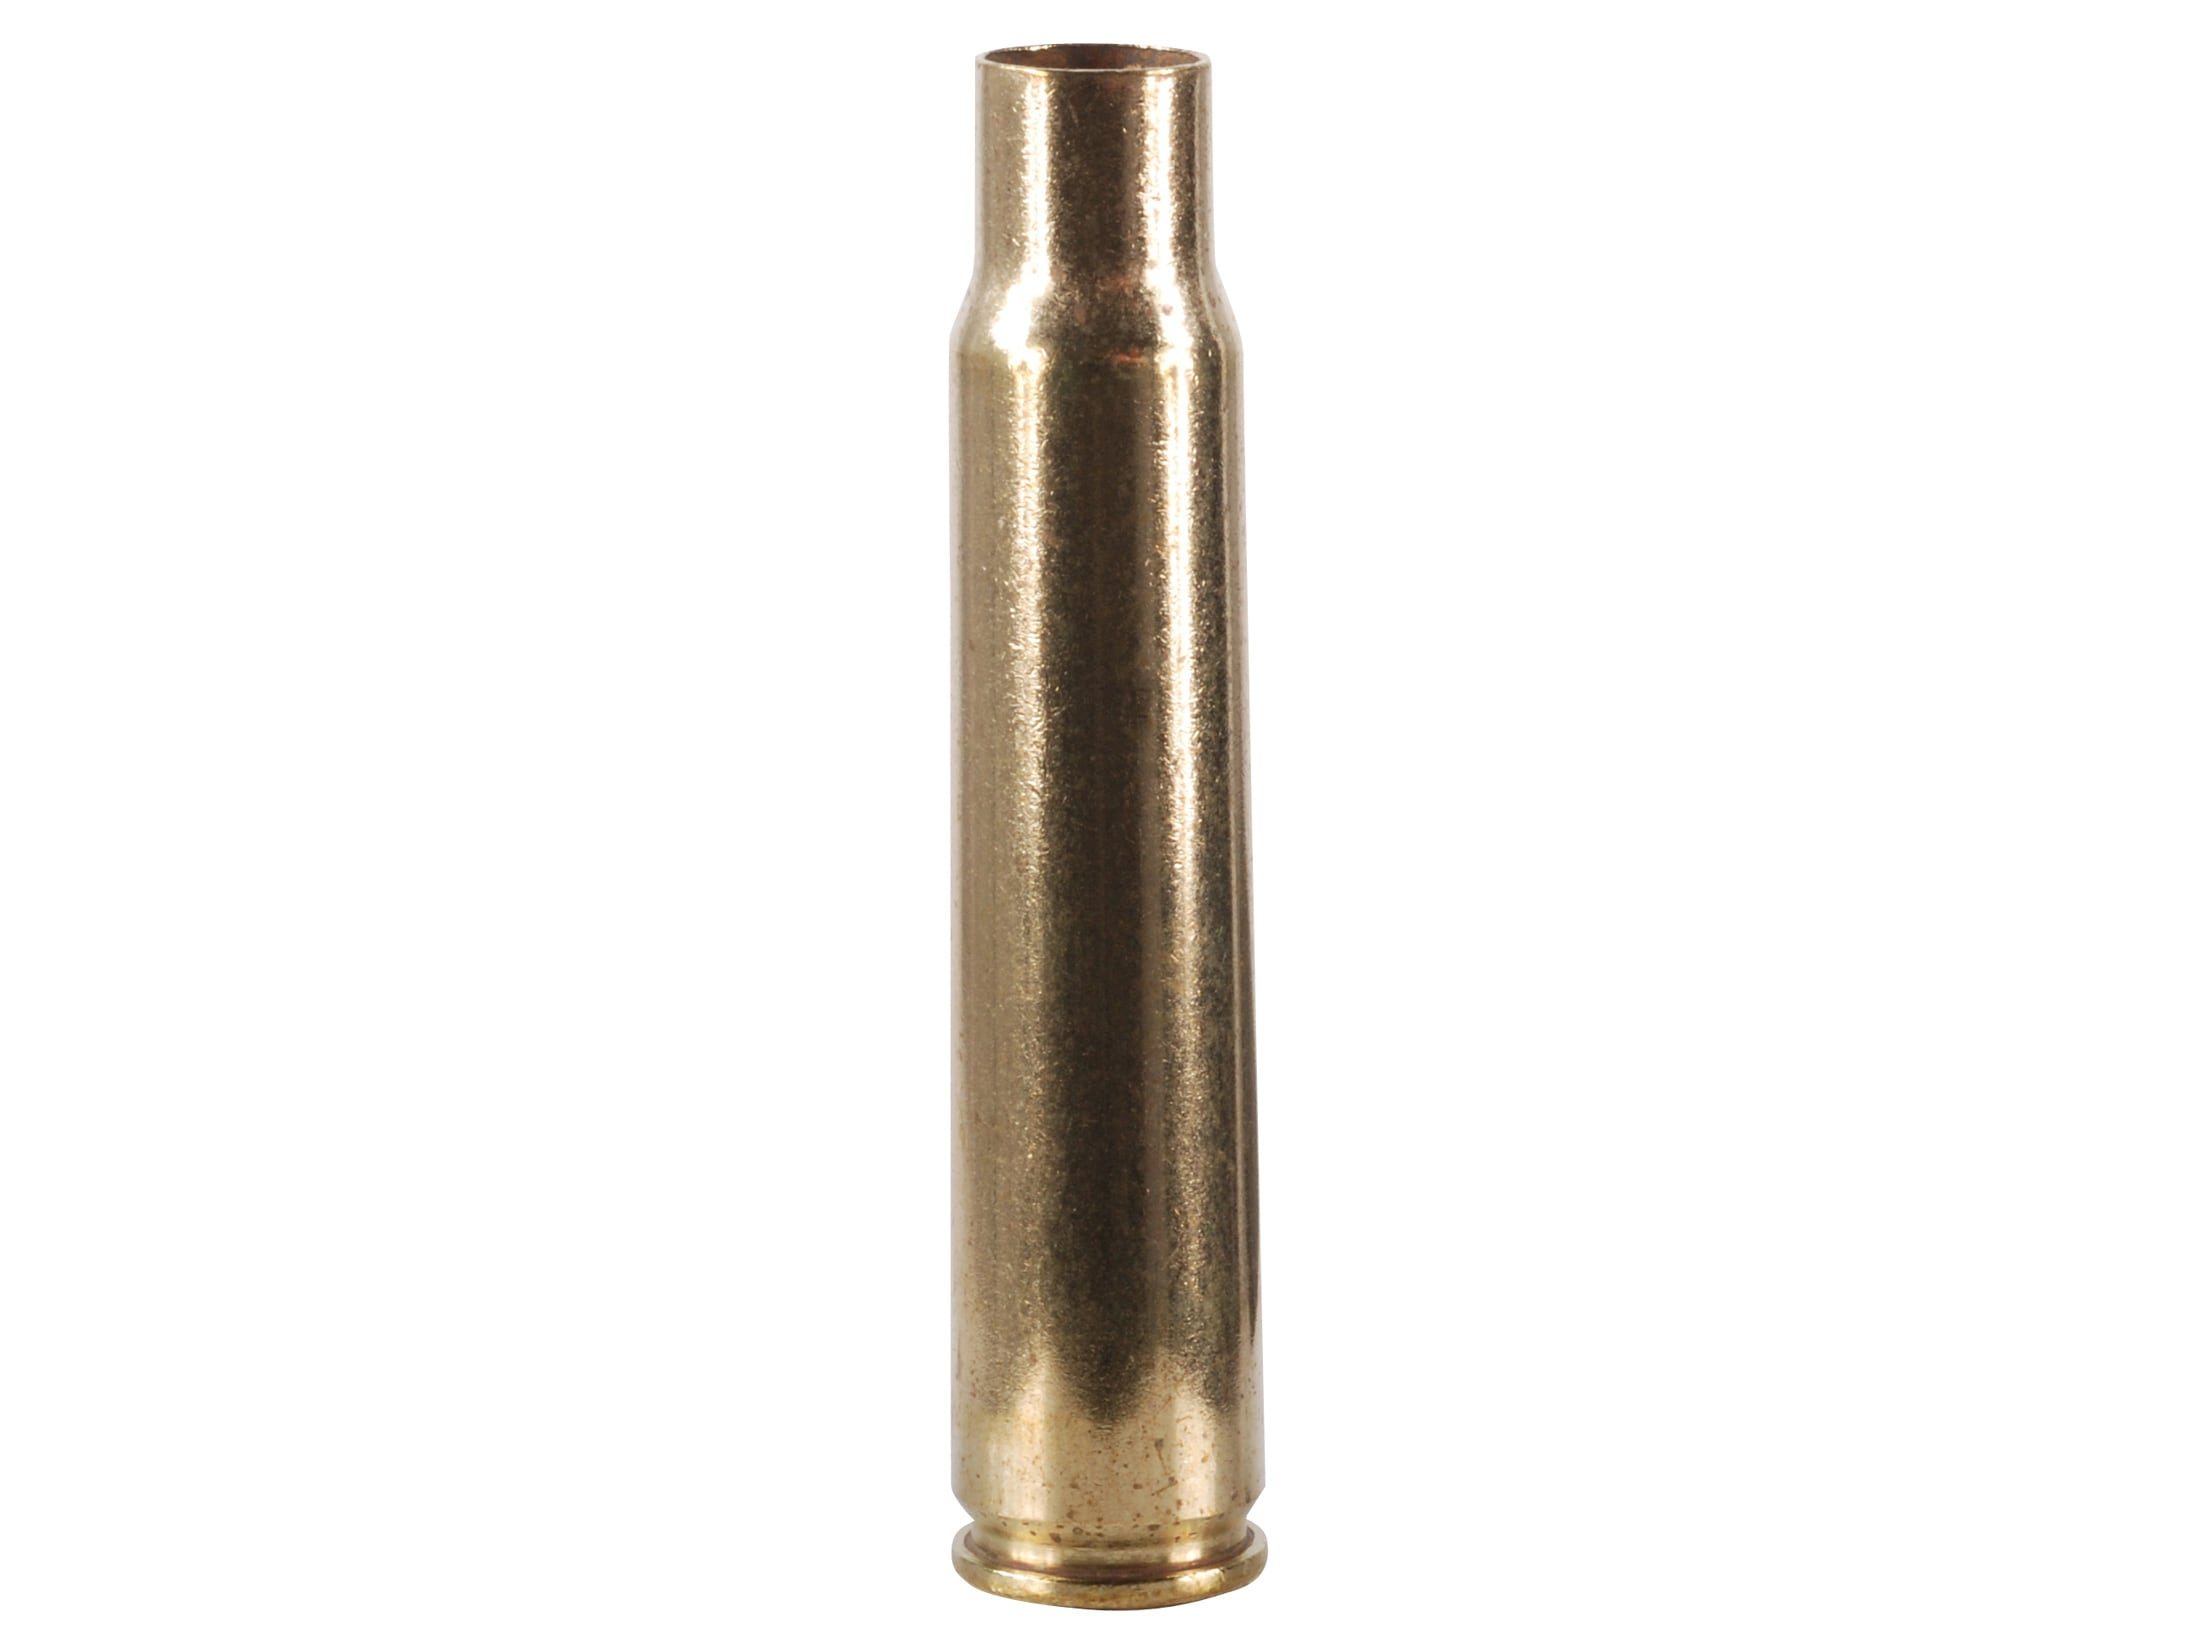 Winchester Brass 8x57mm Mauser (8mm Mauser) Case of 1000 (20 Bags of